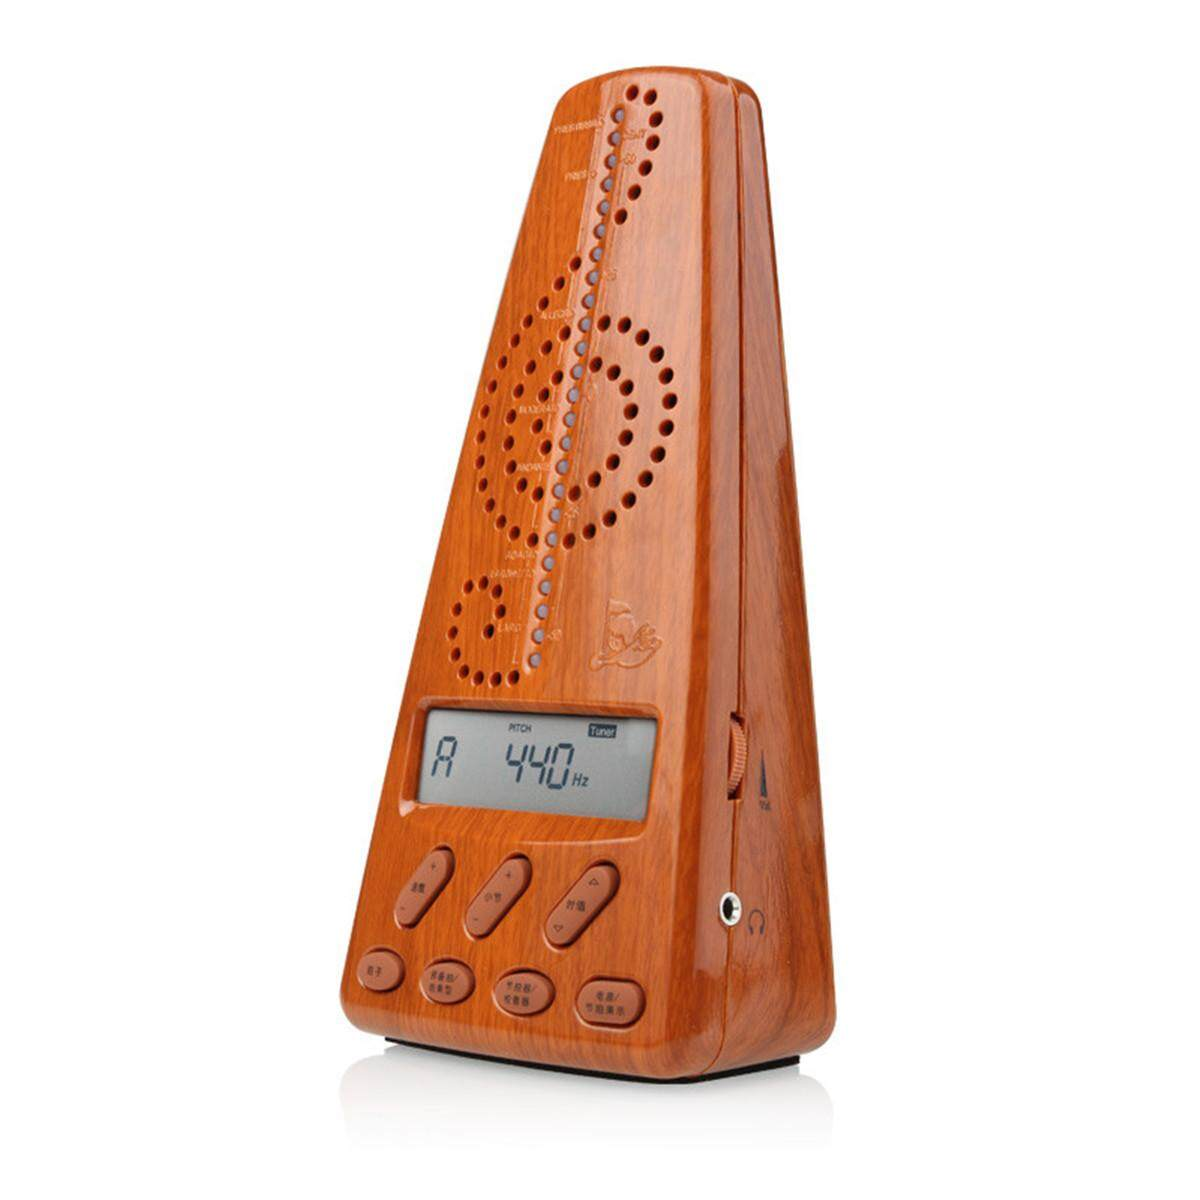 Colorful Wmt-220 Microcomputer Metronome 3 In 1 Metro-Tuner Color Ramdom A4 Tone - Intl By Channy.